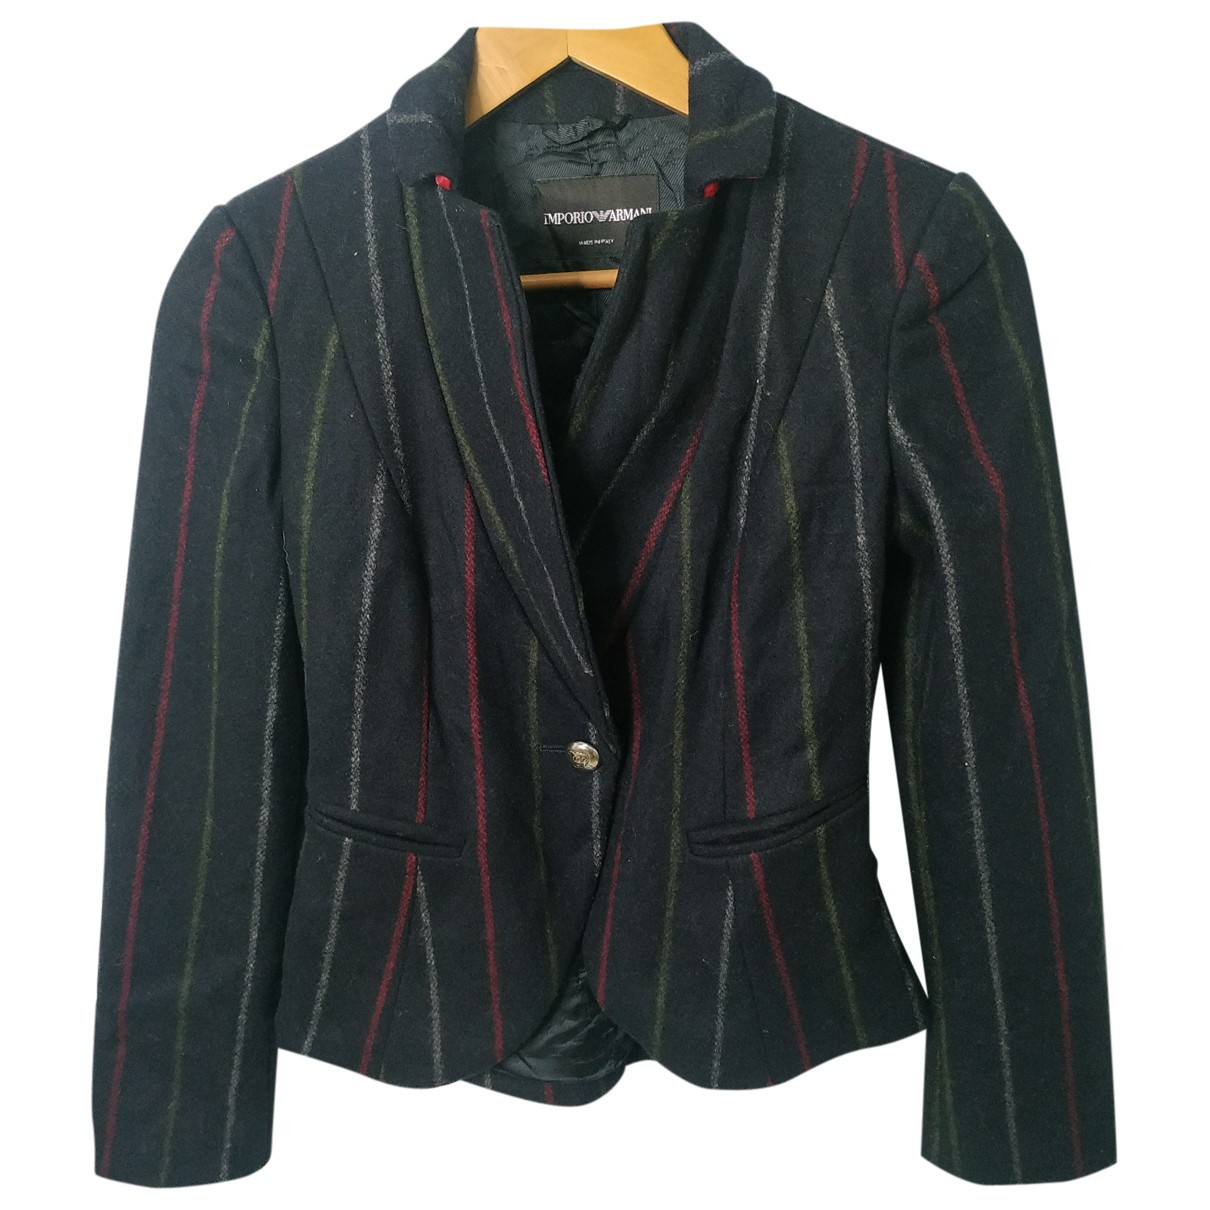 Emporio Armani \N Jacke in  Bunt Wolle